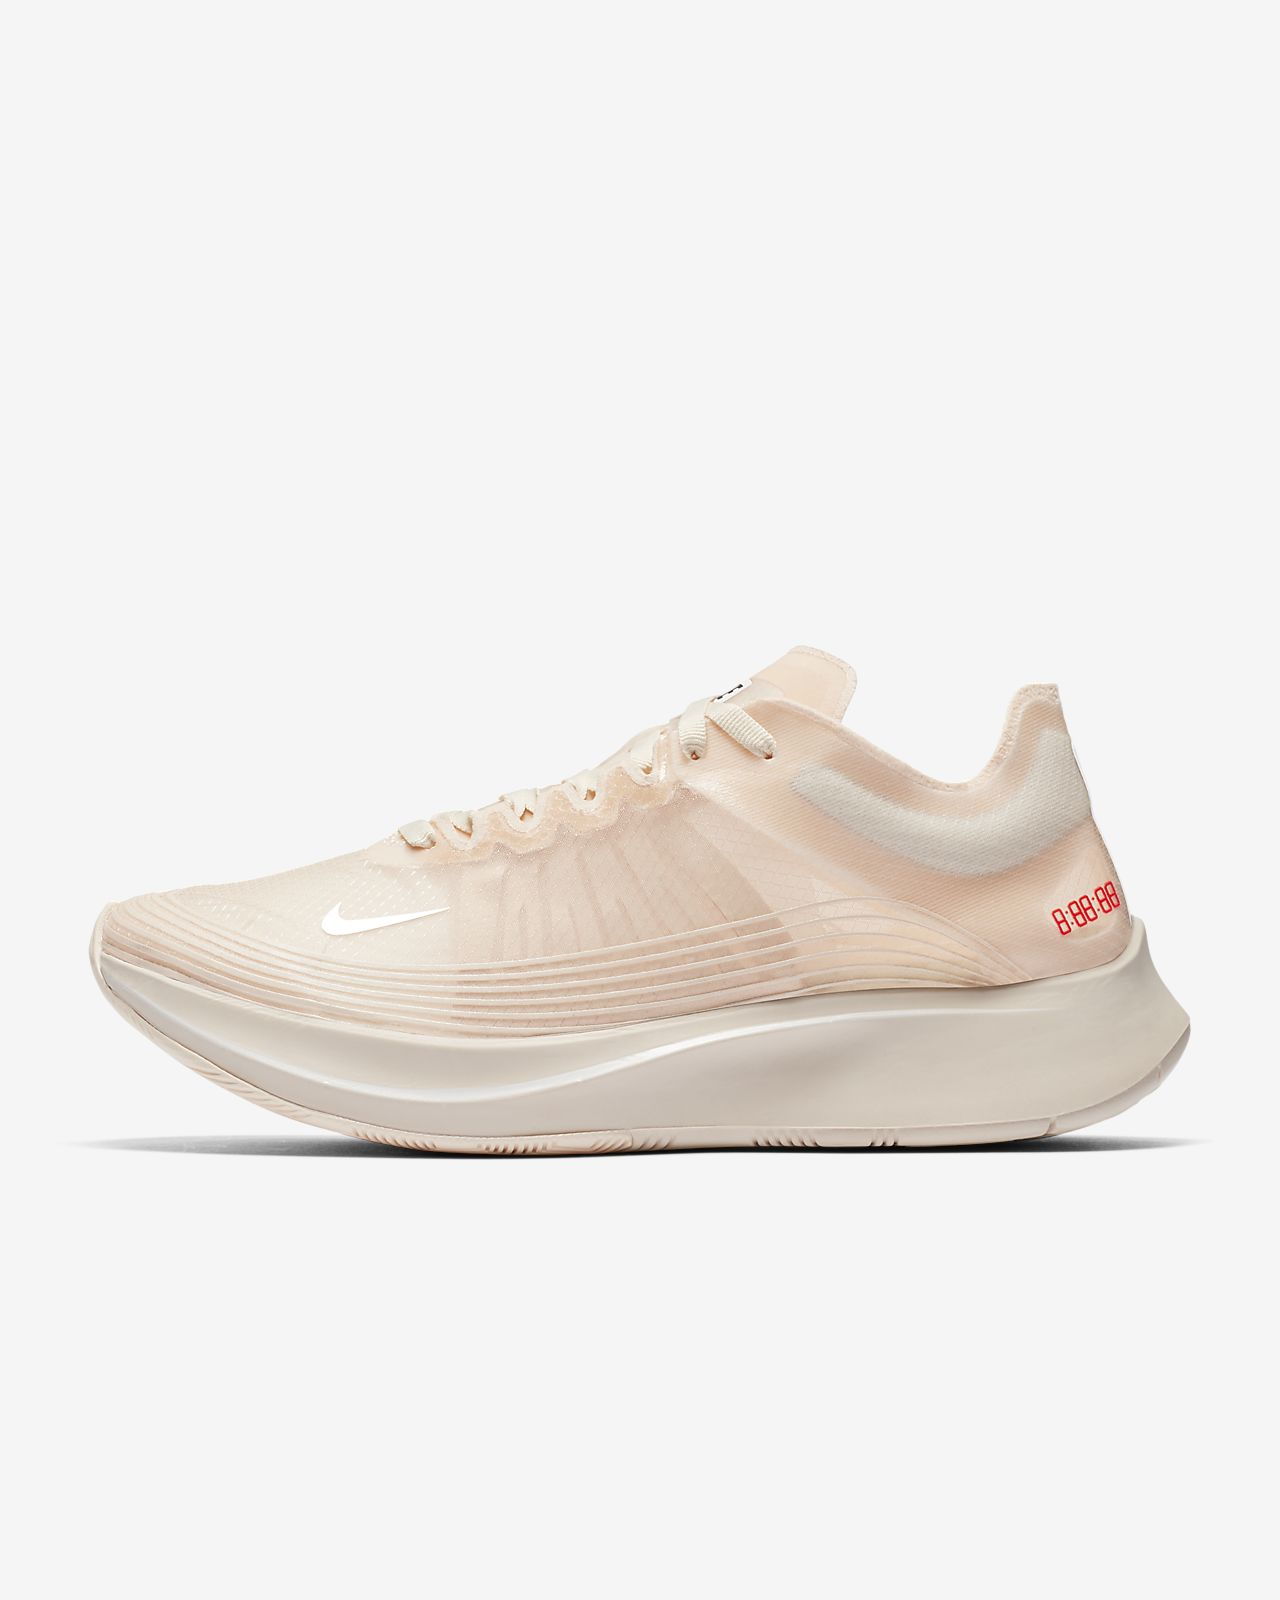 a1f676e48f66 Nike Zoom Fly SP Women s Running Shoe. Nike.com GB